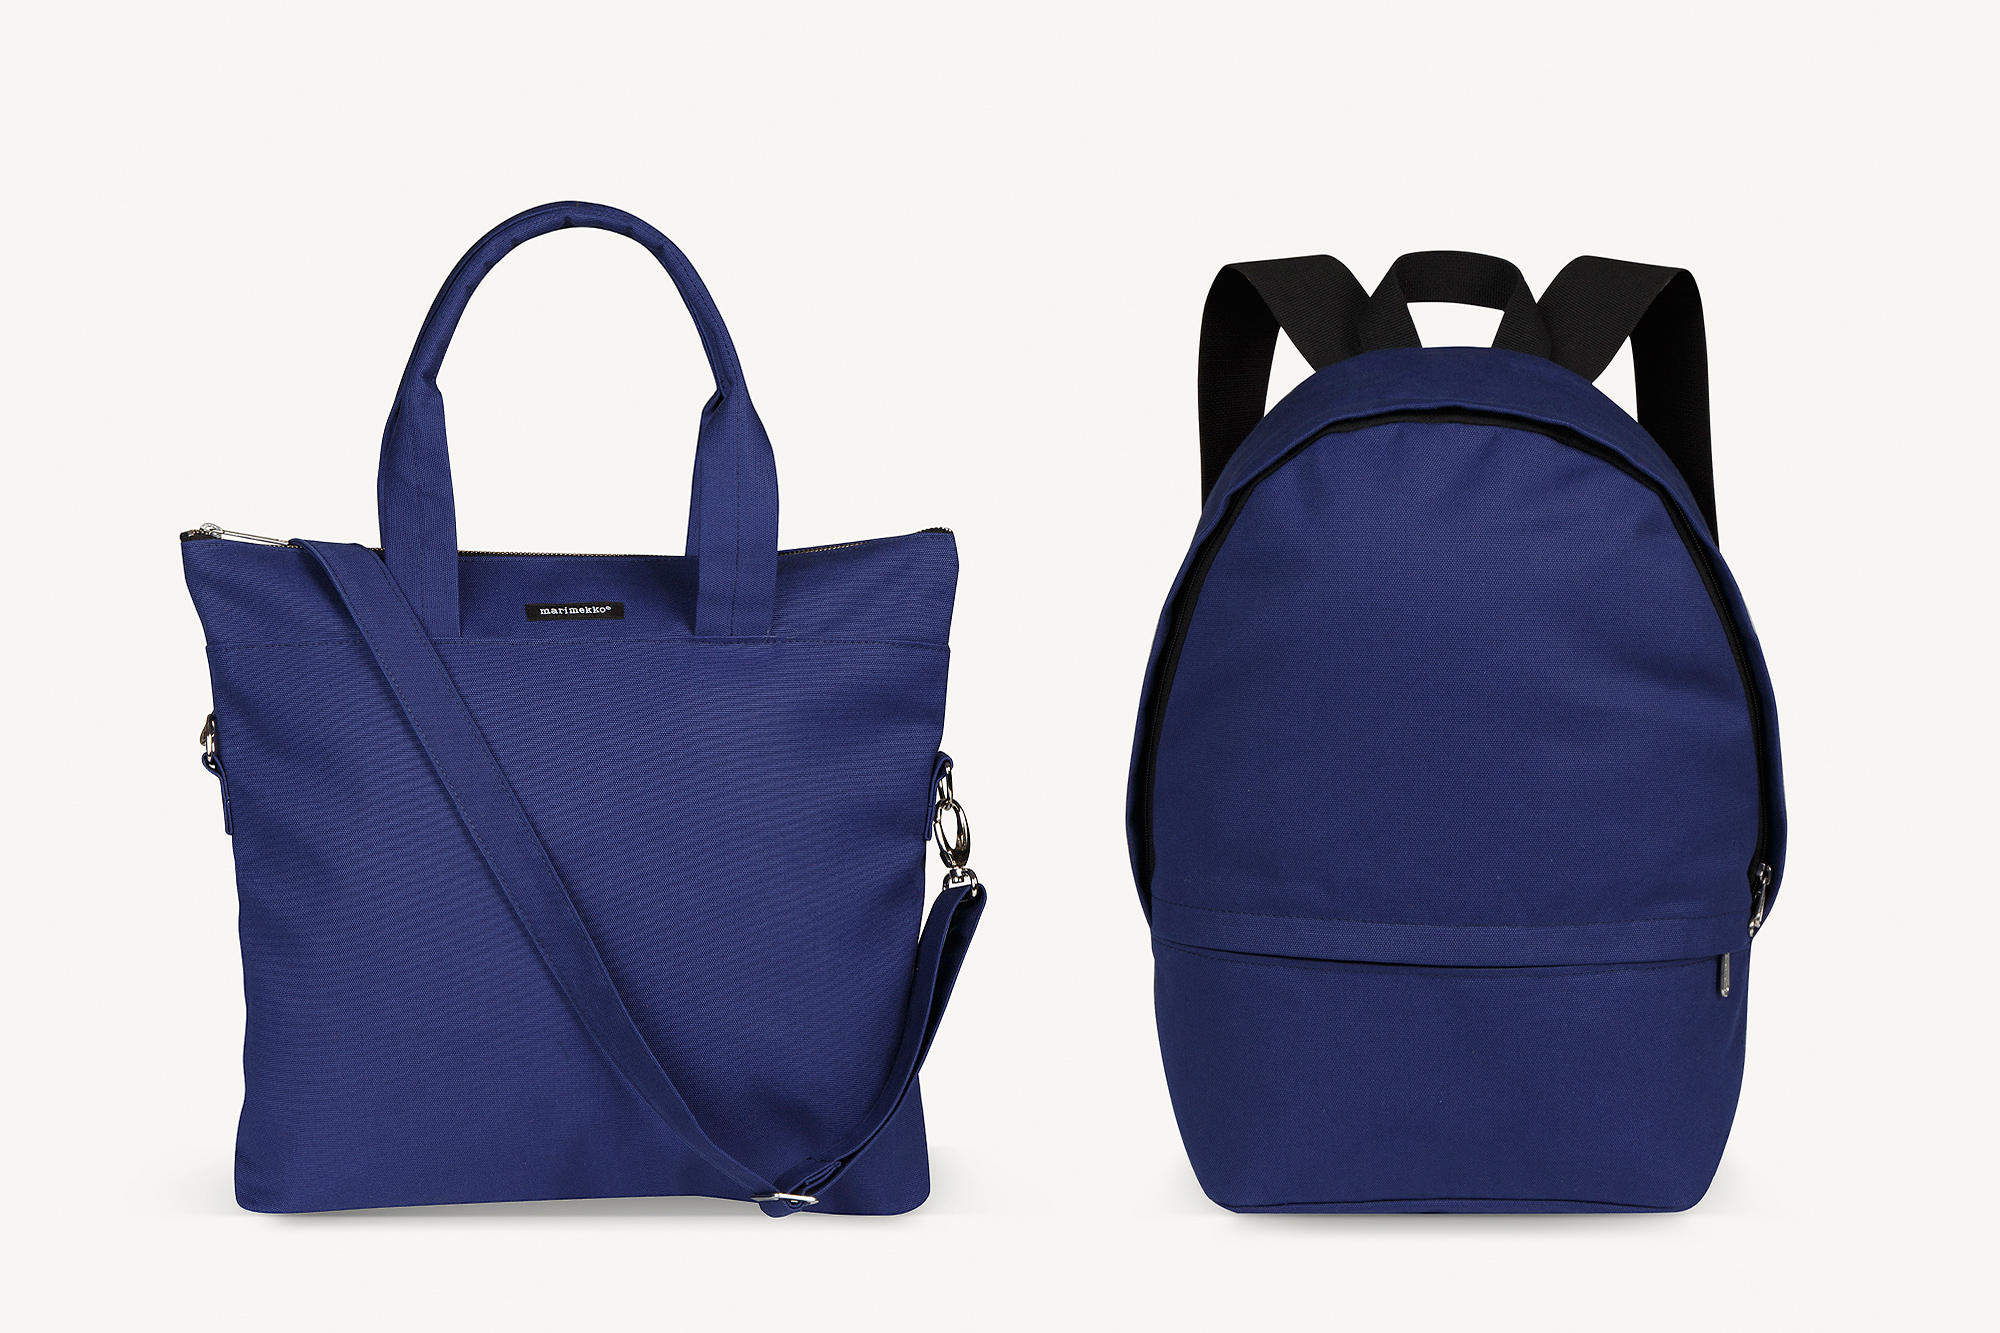 2.3- Canvas Bags